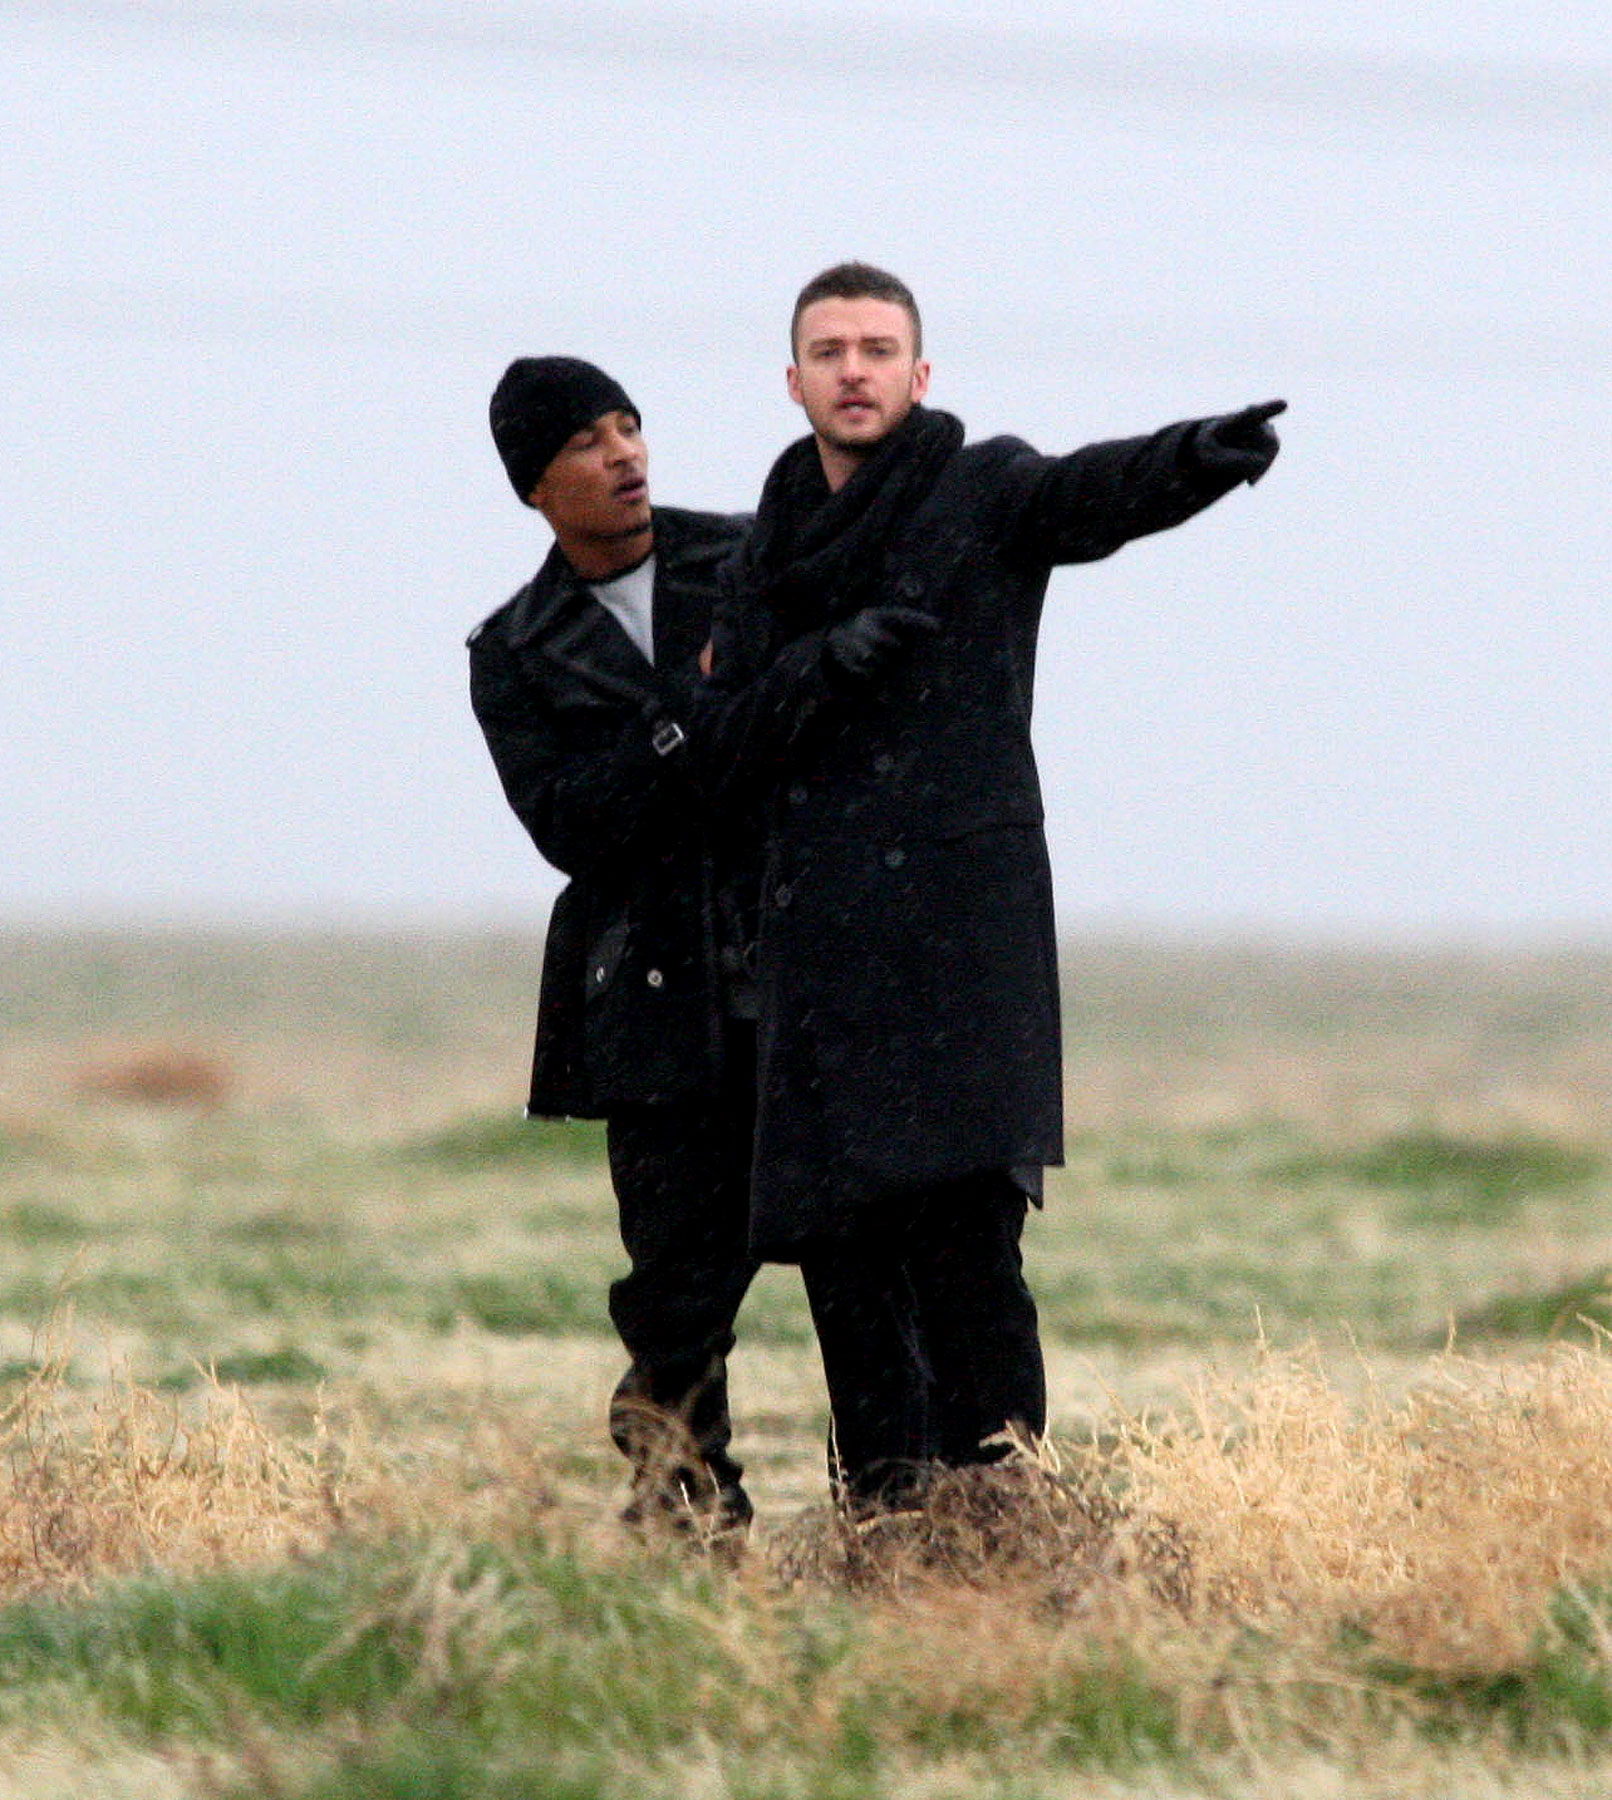 Justin Timberlake and T.I. Are Shooting for a Hit